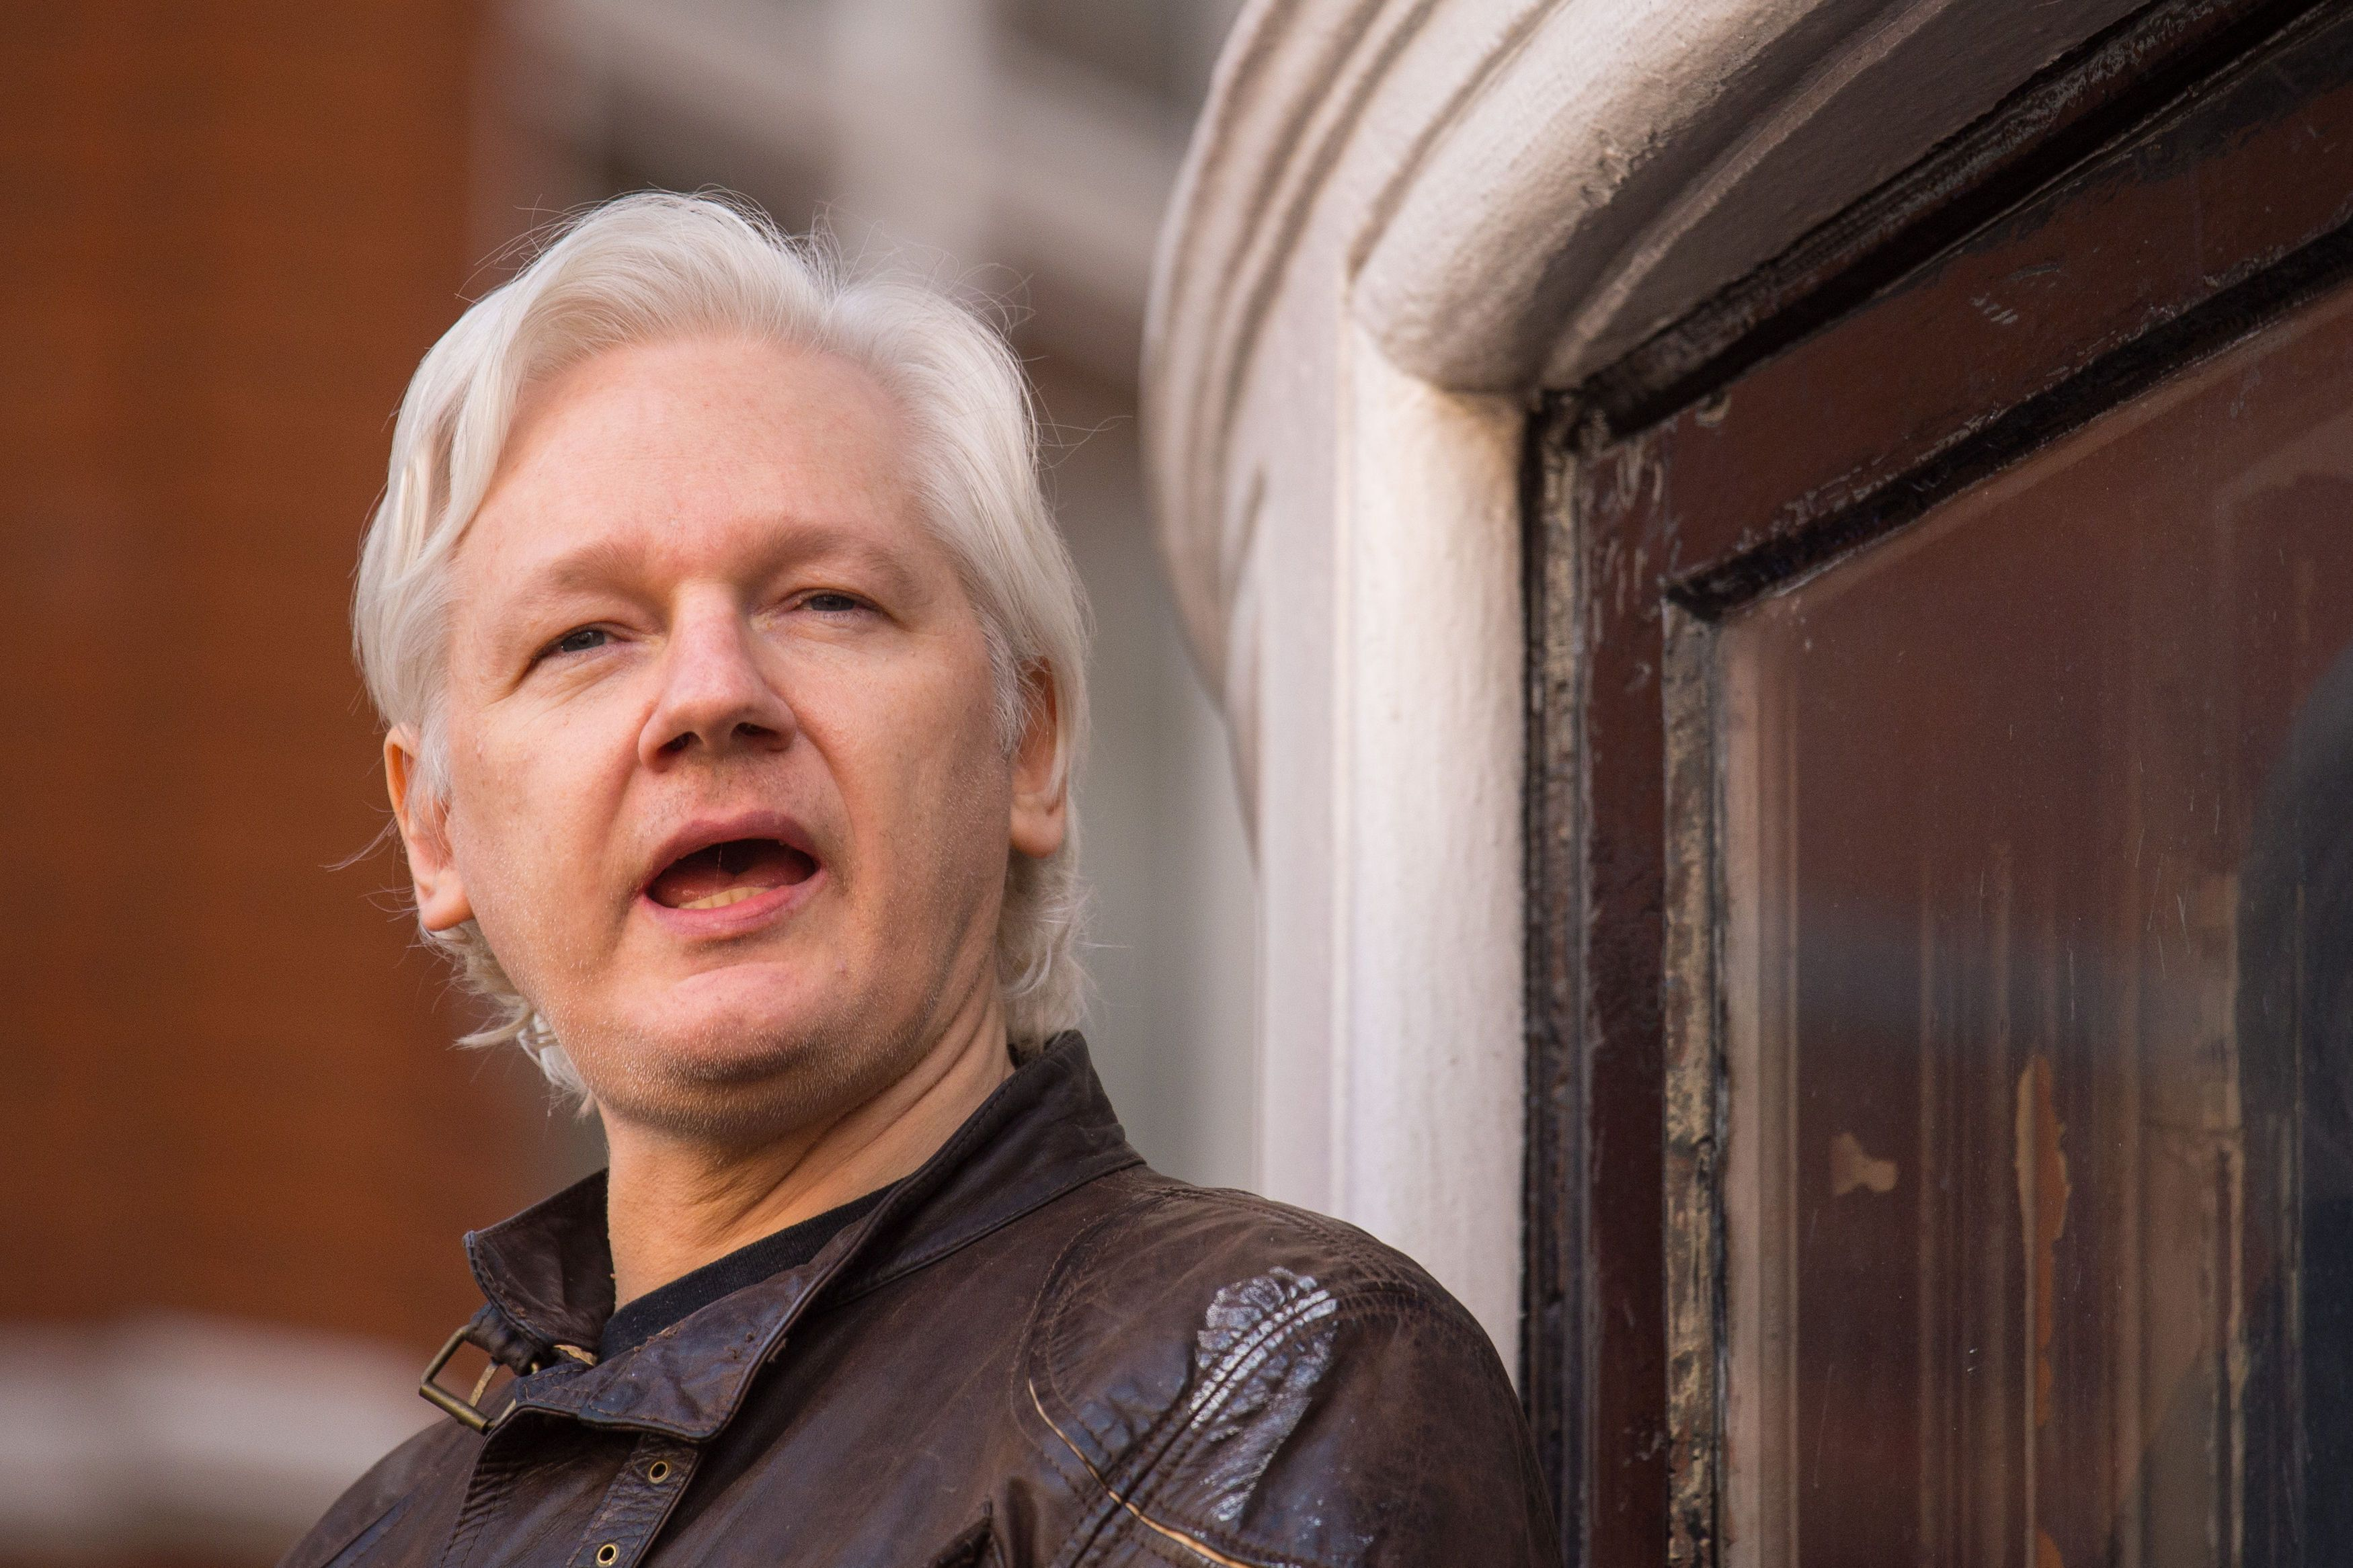 File photo dated 19/5/2017 of Julian Assange, as today marks the sixth anniversary of his entering the Ecuadorian embassy in London seeking political asylum to prevent his extradition to the US.